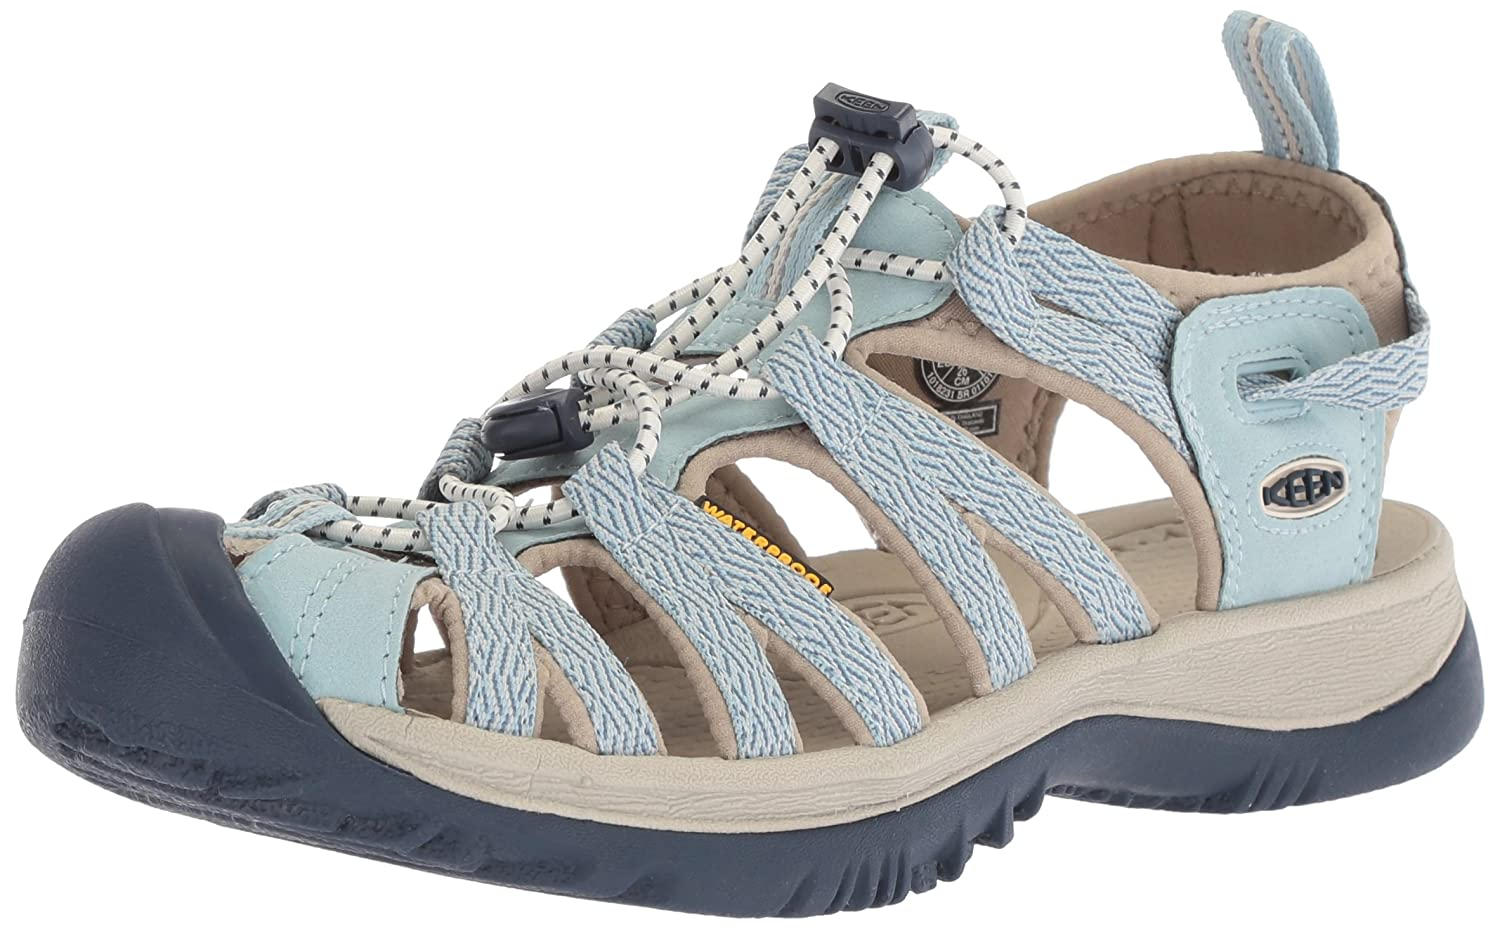 KEEN Women's Whisper-w Sandal B071DFKKLC 8 B(M) US|Sterling Blue/Dress Blue